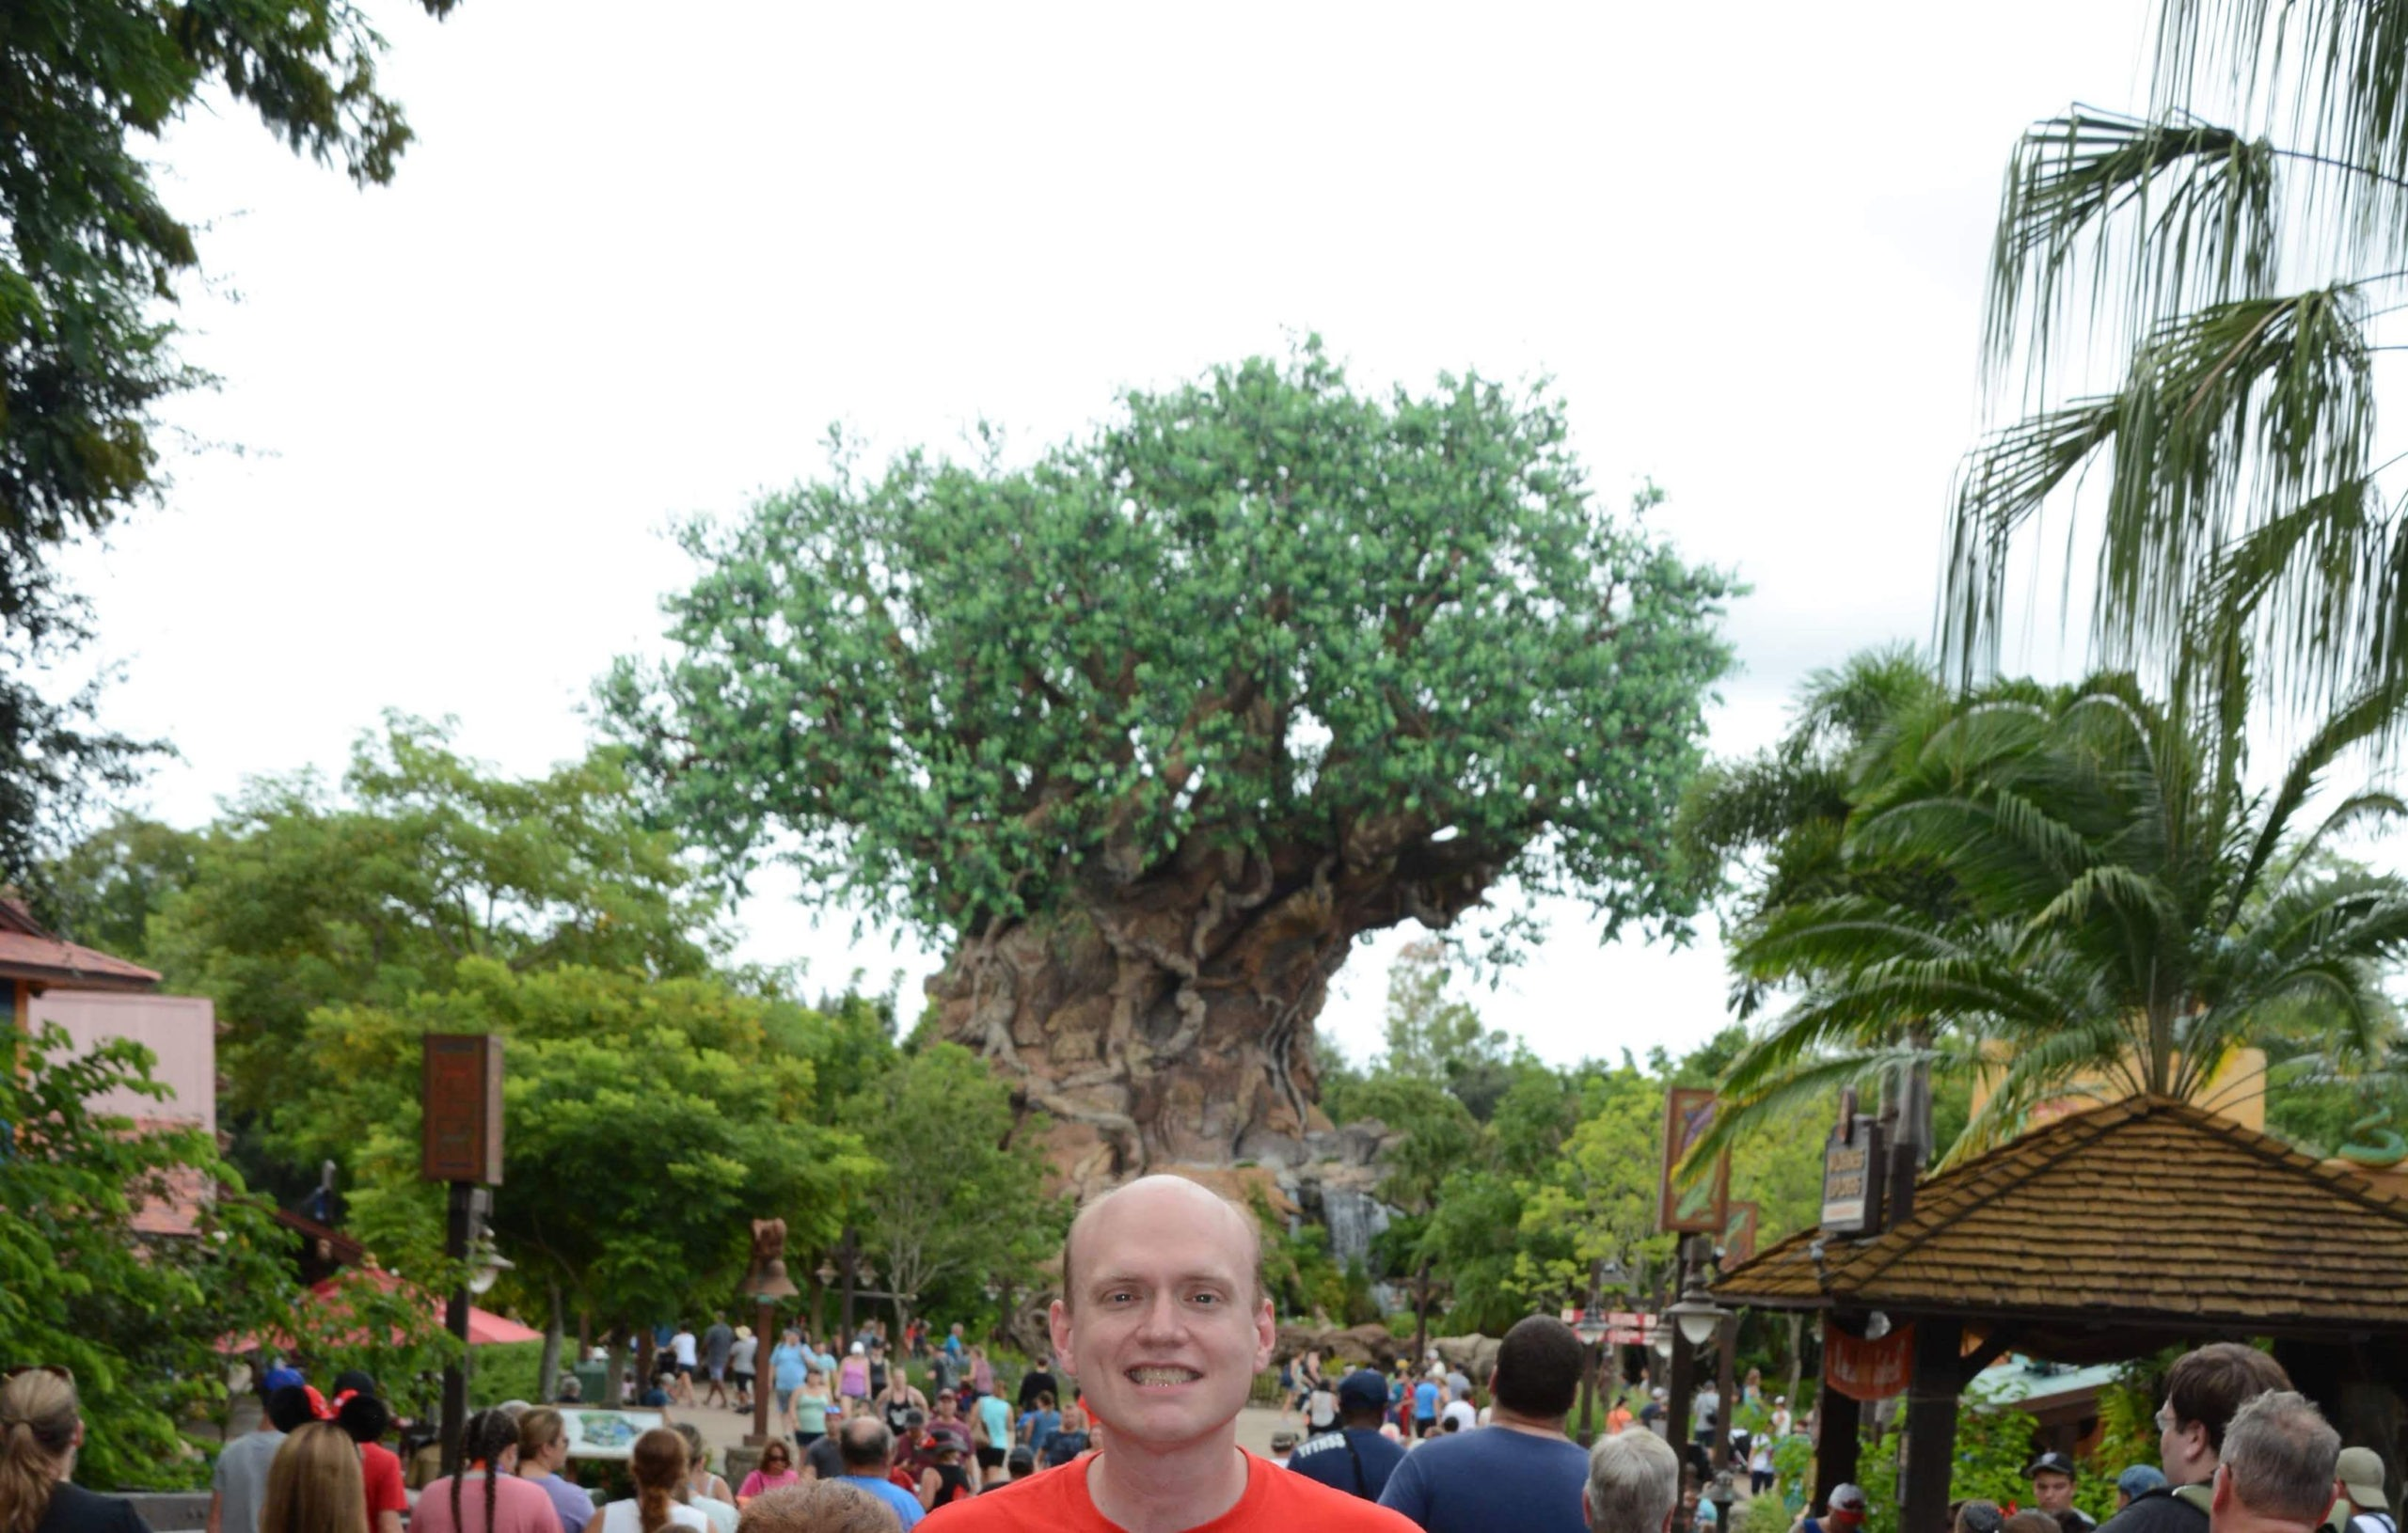 Man in orange t-shirt smiling in front of a large group of people and a big tree